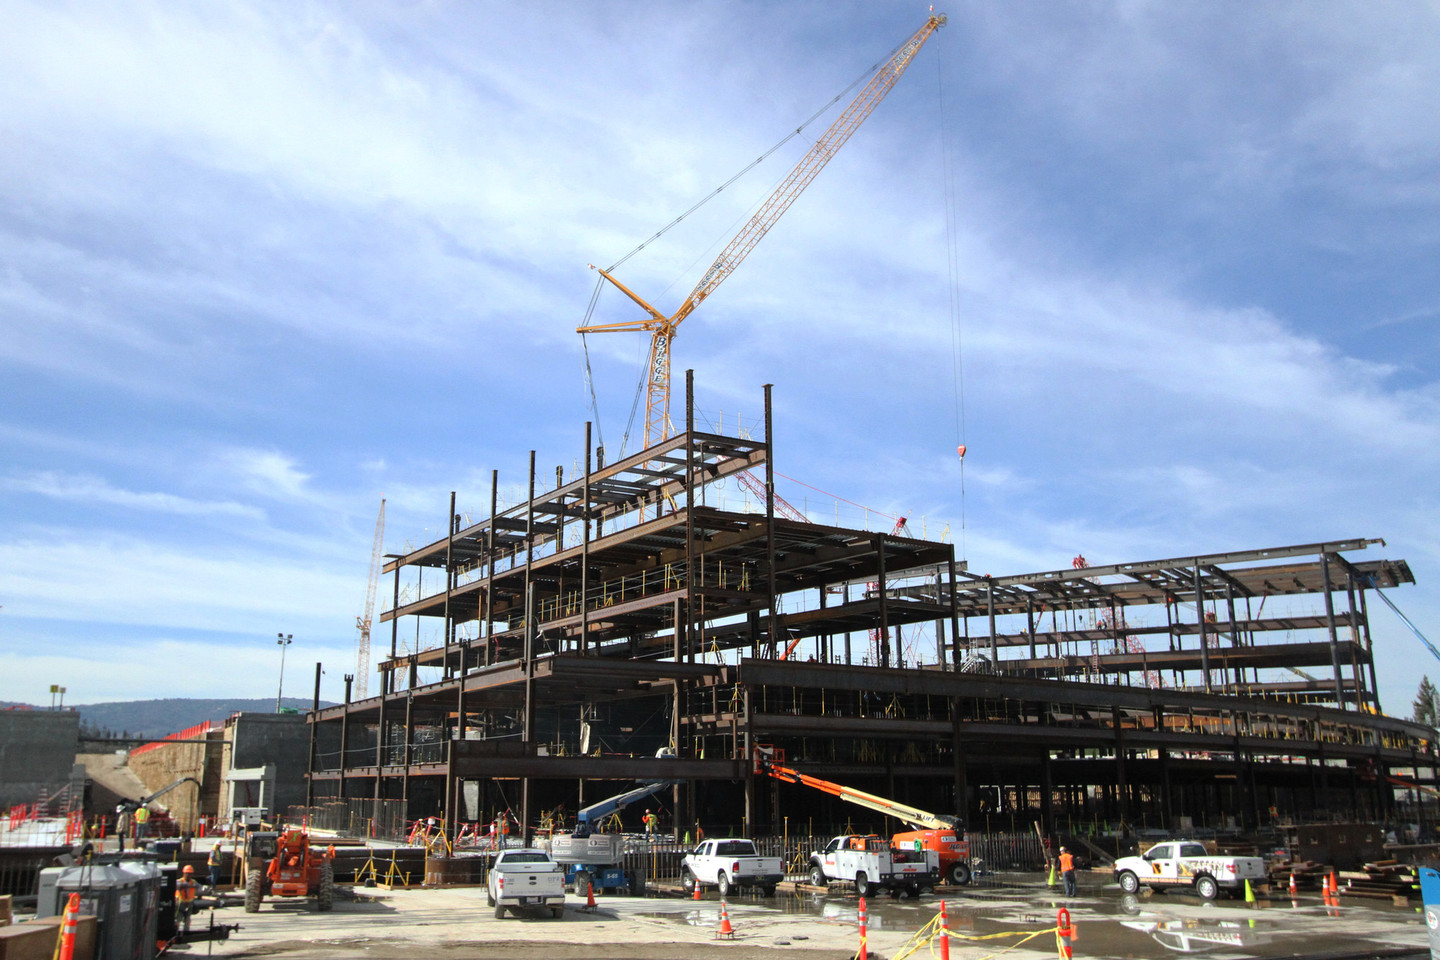 The main office will be a large circular building and is being constructed with concrete pieces. (Anya Schultz/KQED)